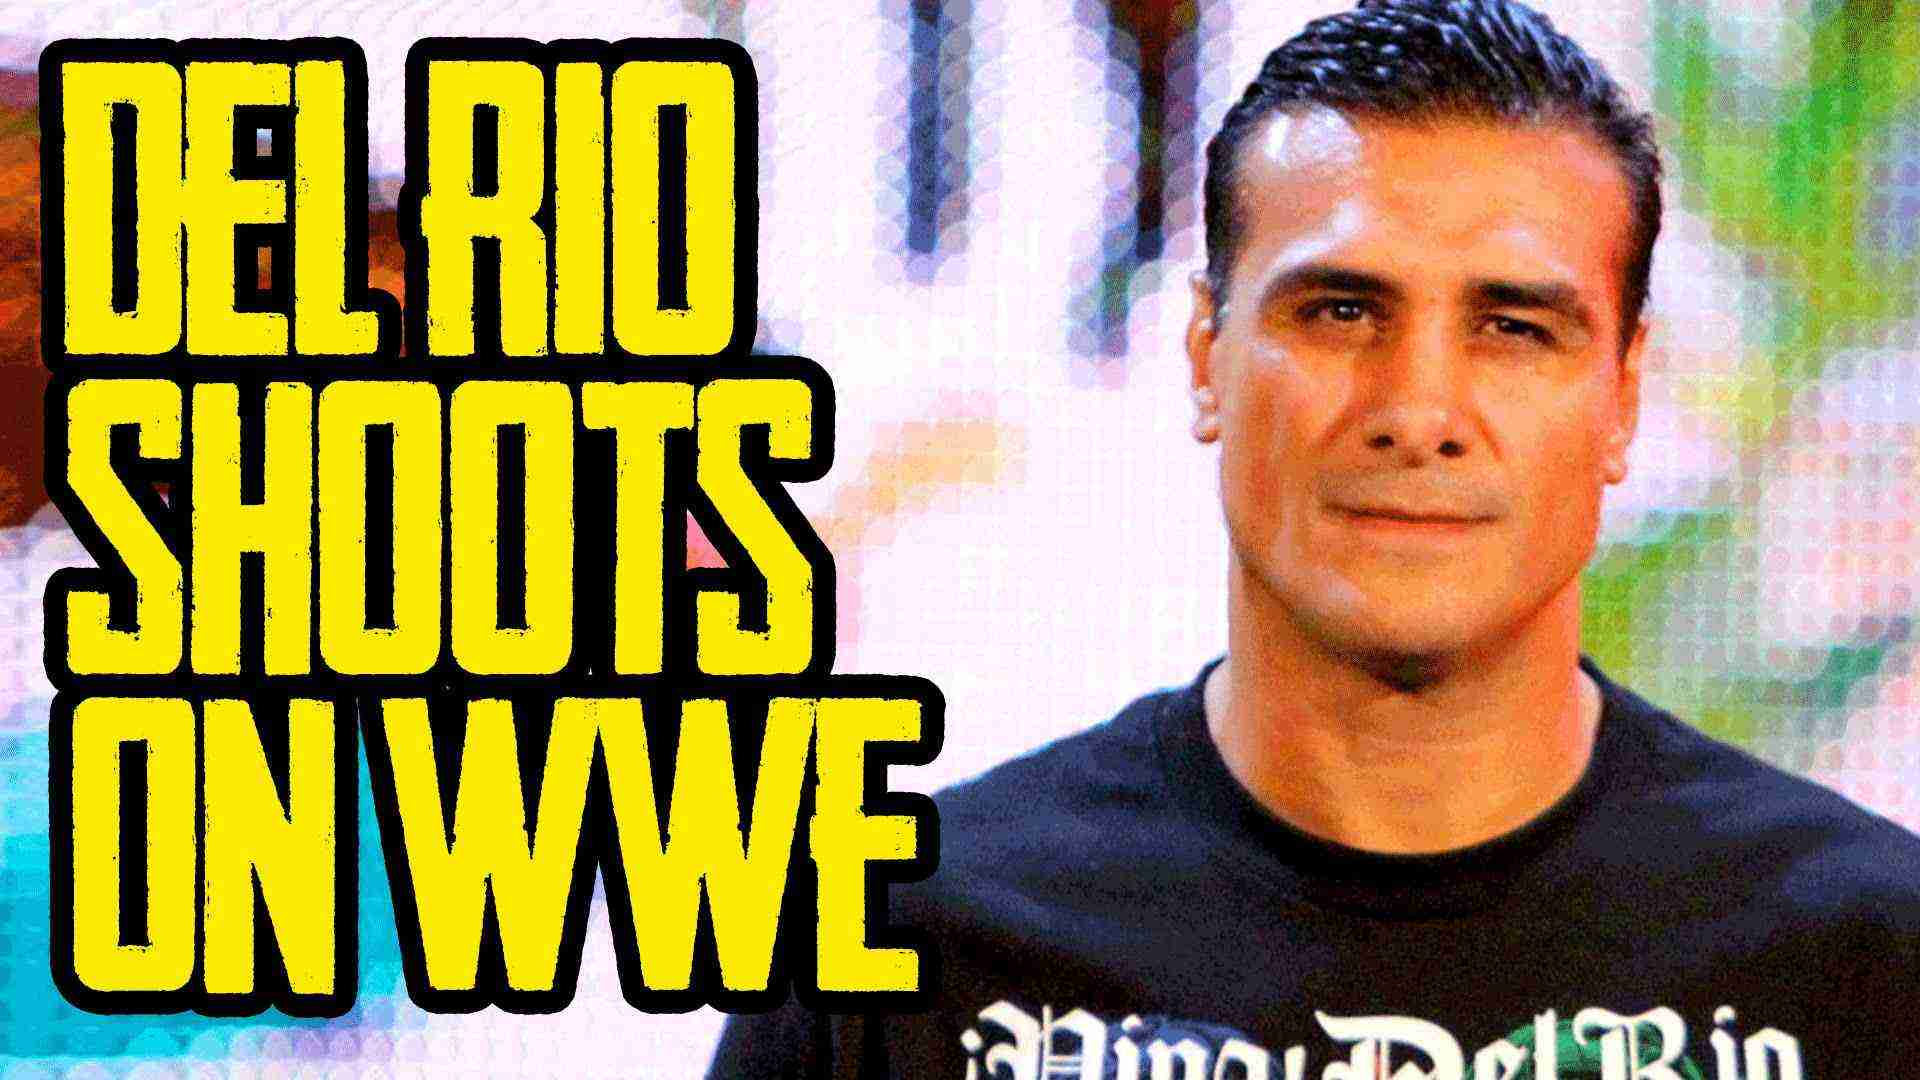 ALBERTO DEL RIO SHOOTS ON WWE! (WWE Raw Recap and Results 9/12/16)